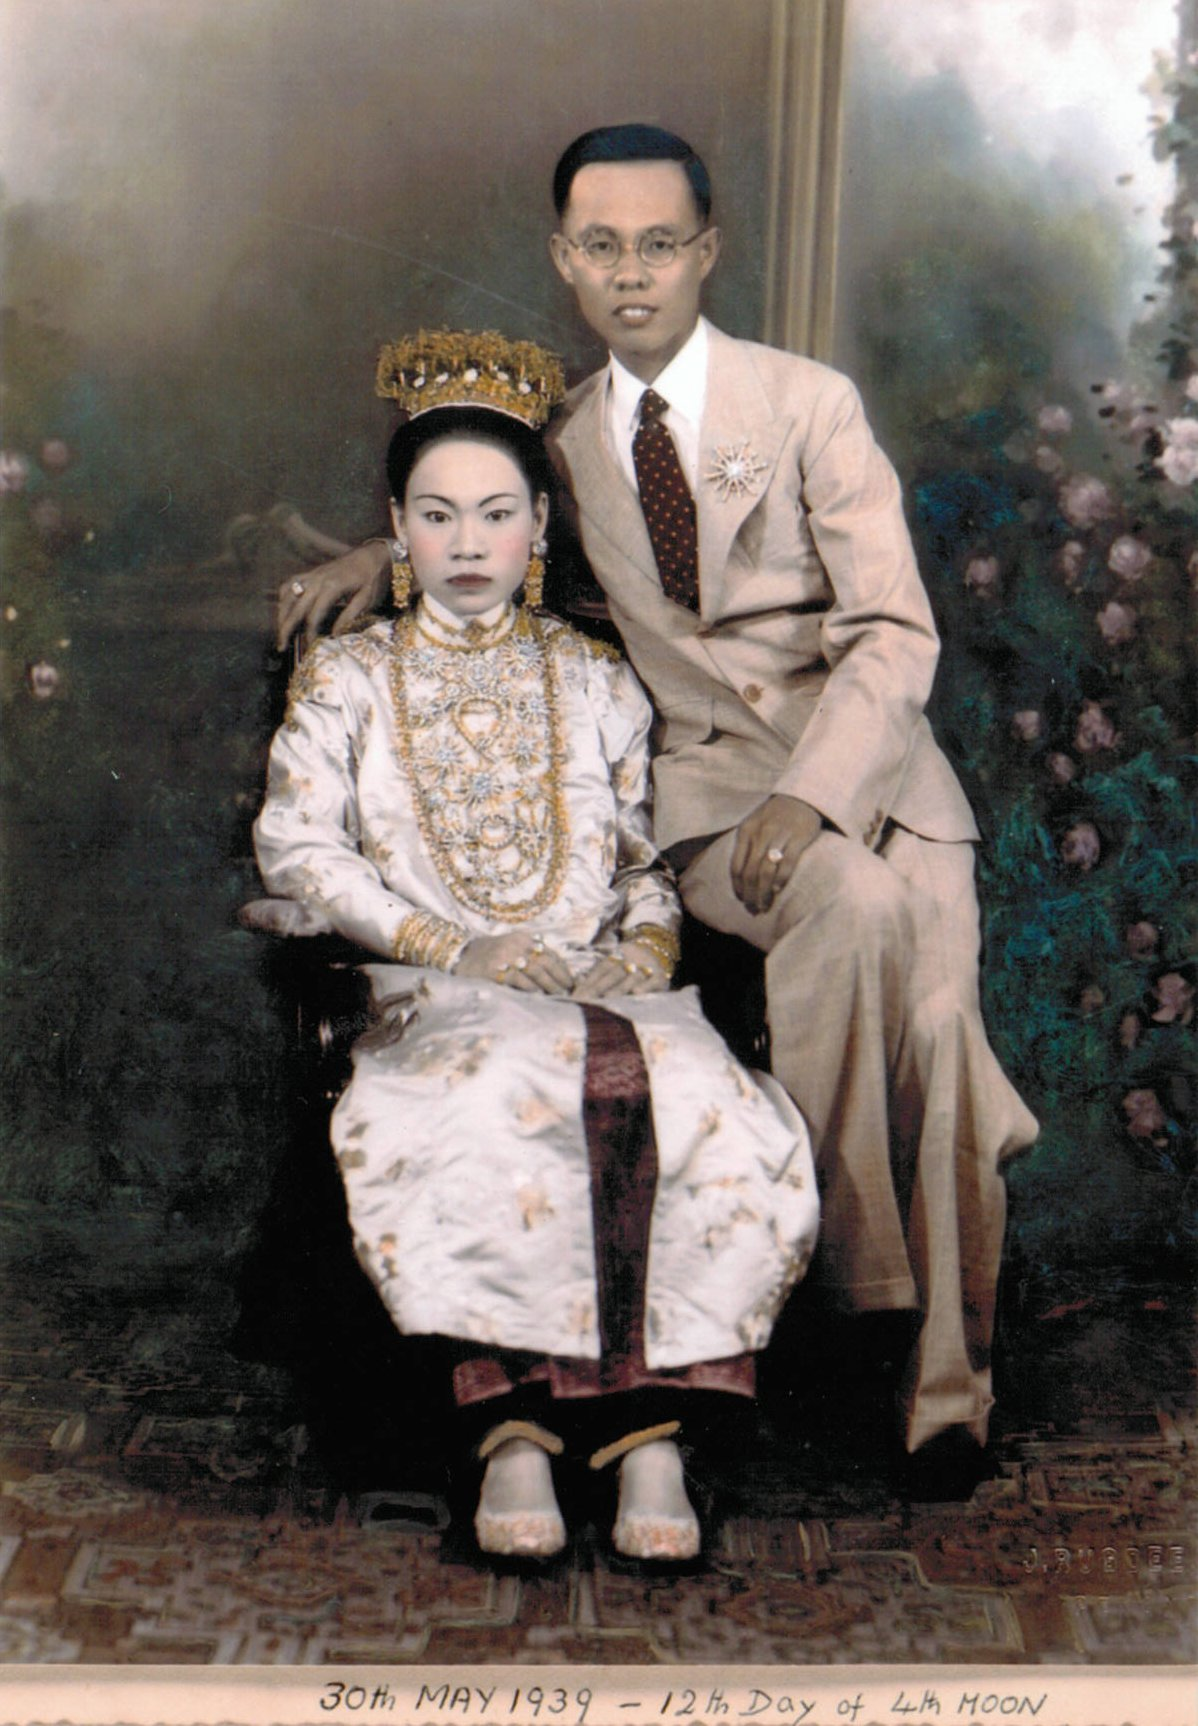 Fileanonymous Photograph Of A Peranakan Bride And Groom Dated  The